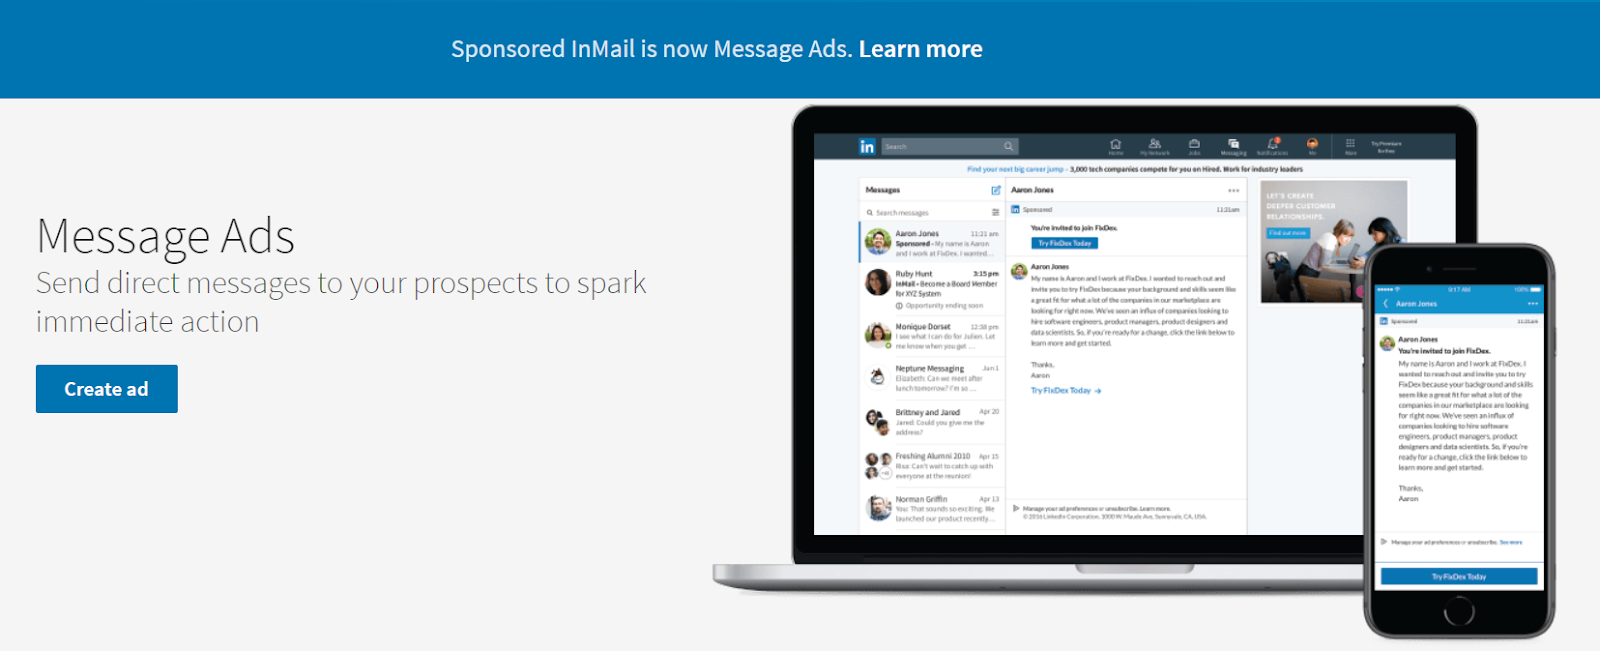 LinkedIn Sponsored InMail is now called Message Ads